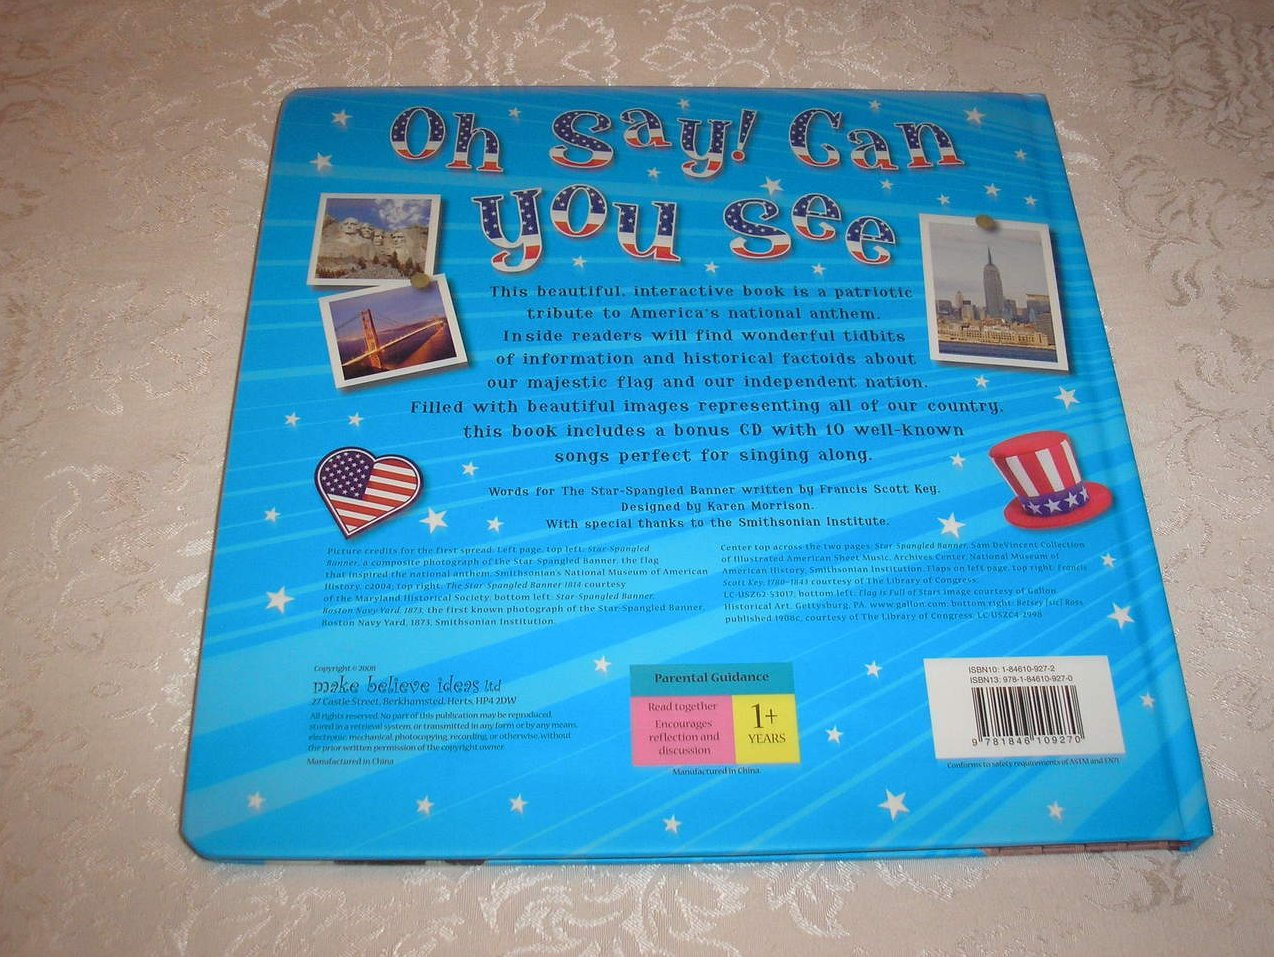 Image 4 of Oh Say! Can You See Francis Scott Key brand new large board book, CD, USA Poster